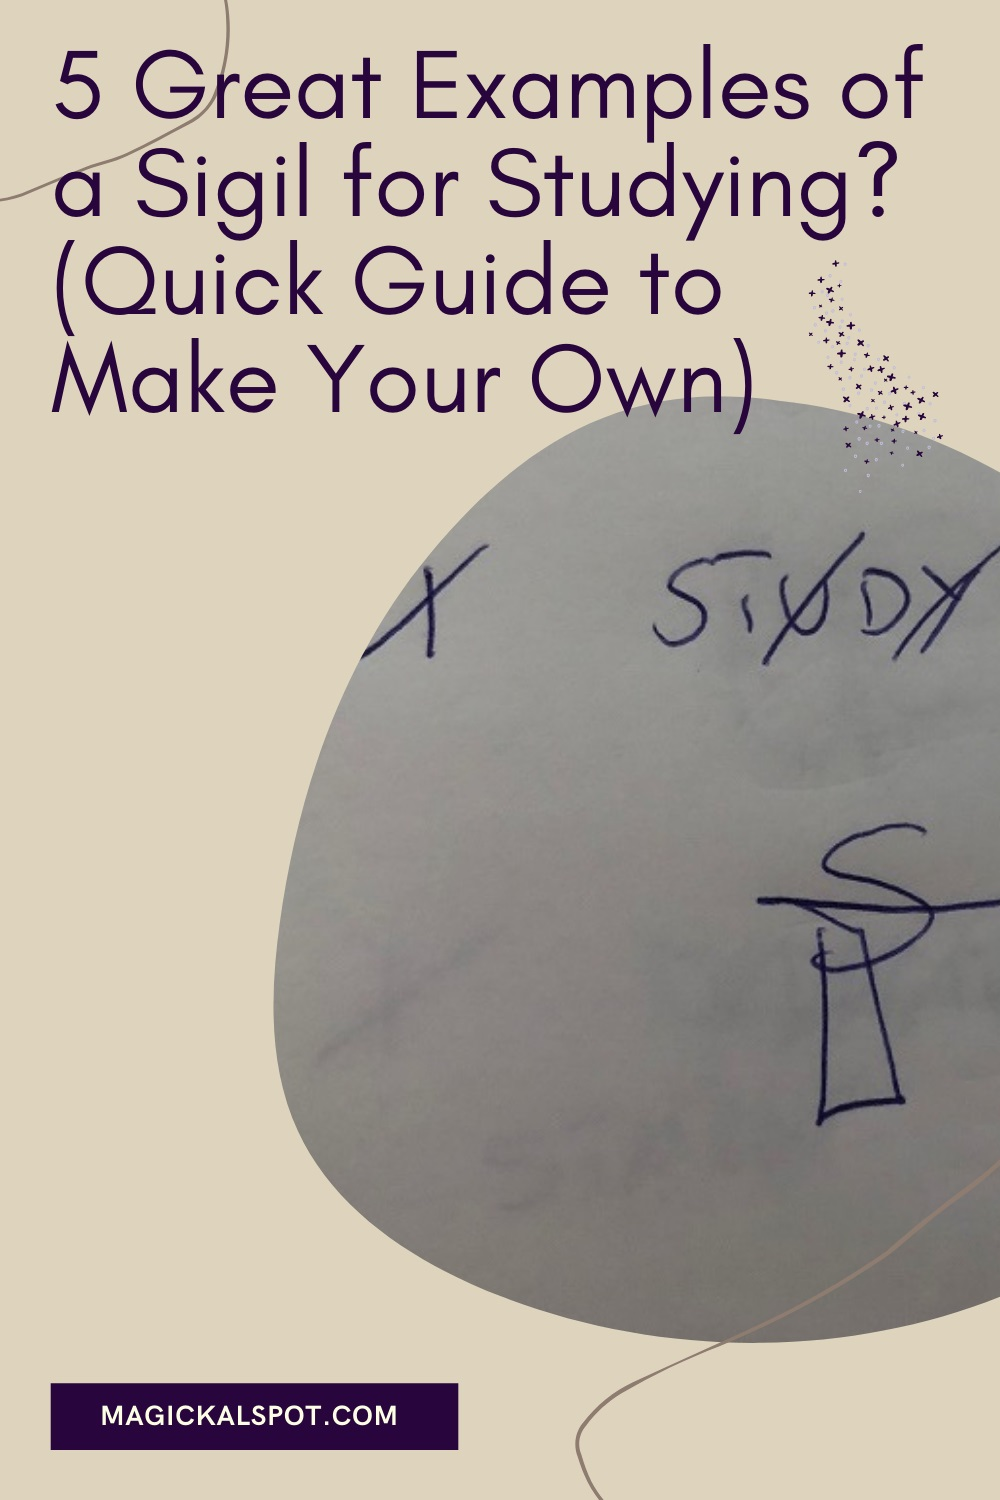 5 Great Examples of a Sigil for Studying by Magickal Spot